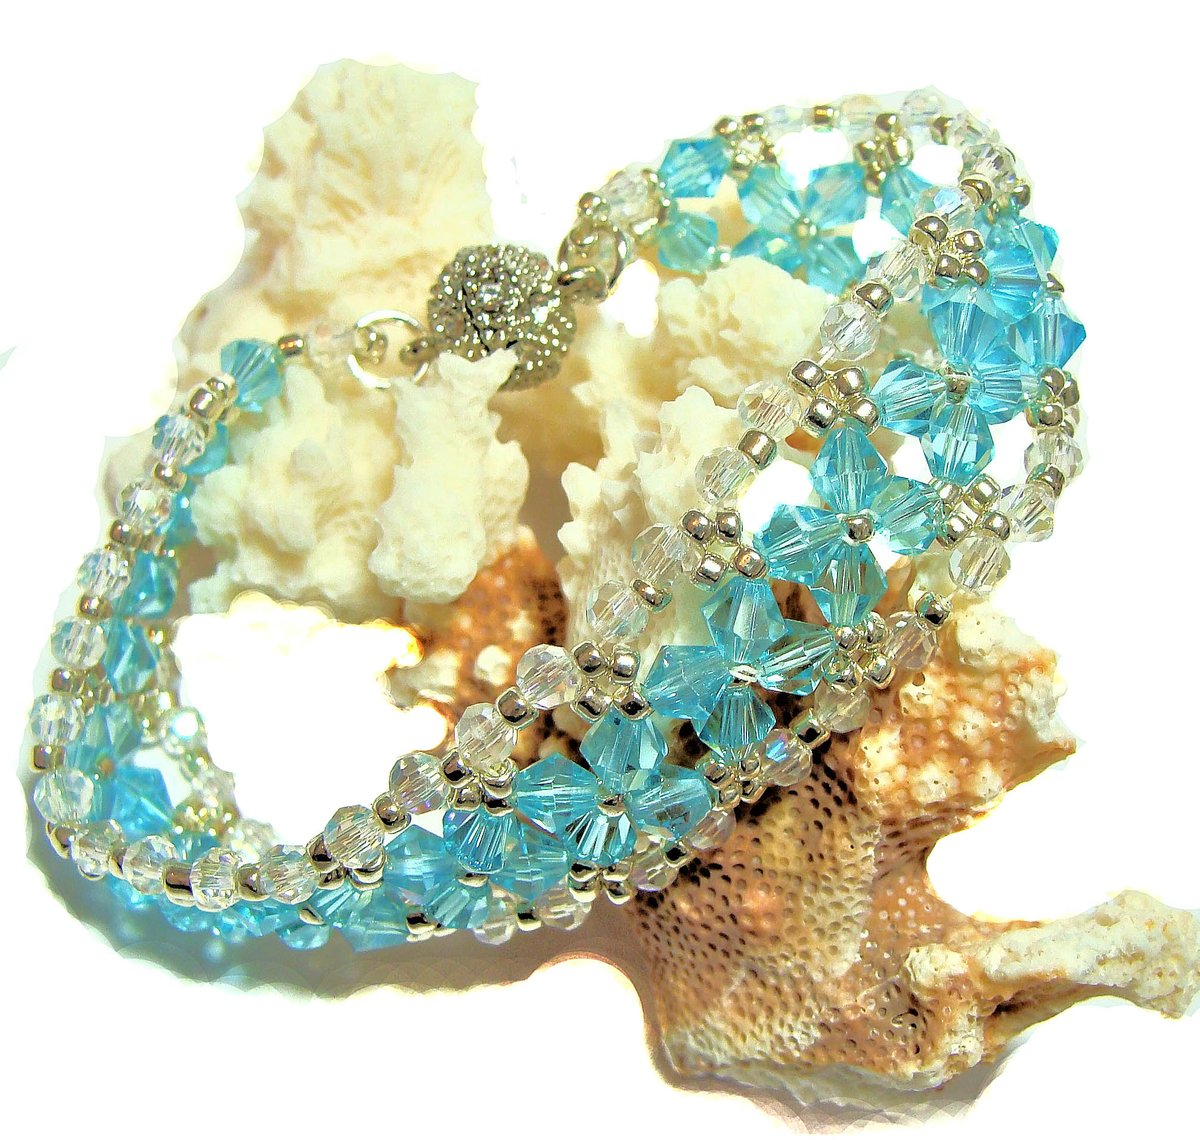 Aqua Crystal Bicones and Clear Czech Fire Polished Beaded Fantasia Bracelet  https:// etsy.me/2ROmCTc  &nbsp;   via @Etsy #aqua #crystals #beadedbracelet #bling #sparkly #biconebeads #romantic #Victorian #etsyhandmade #etsyjewelry #etsy #etsyshop #giftsforher #ValentinesDay  #shopsmall<br>http://pic.twitter.com/5BxWNsAYRF